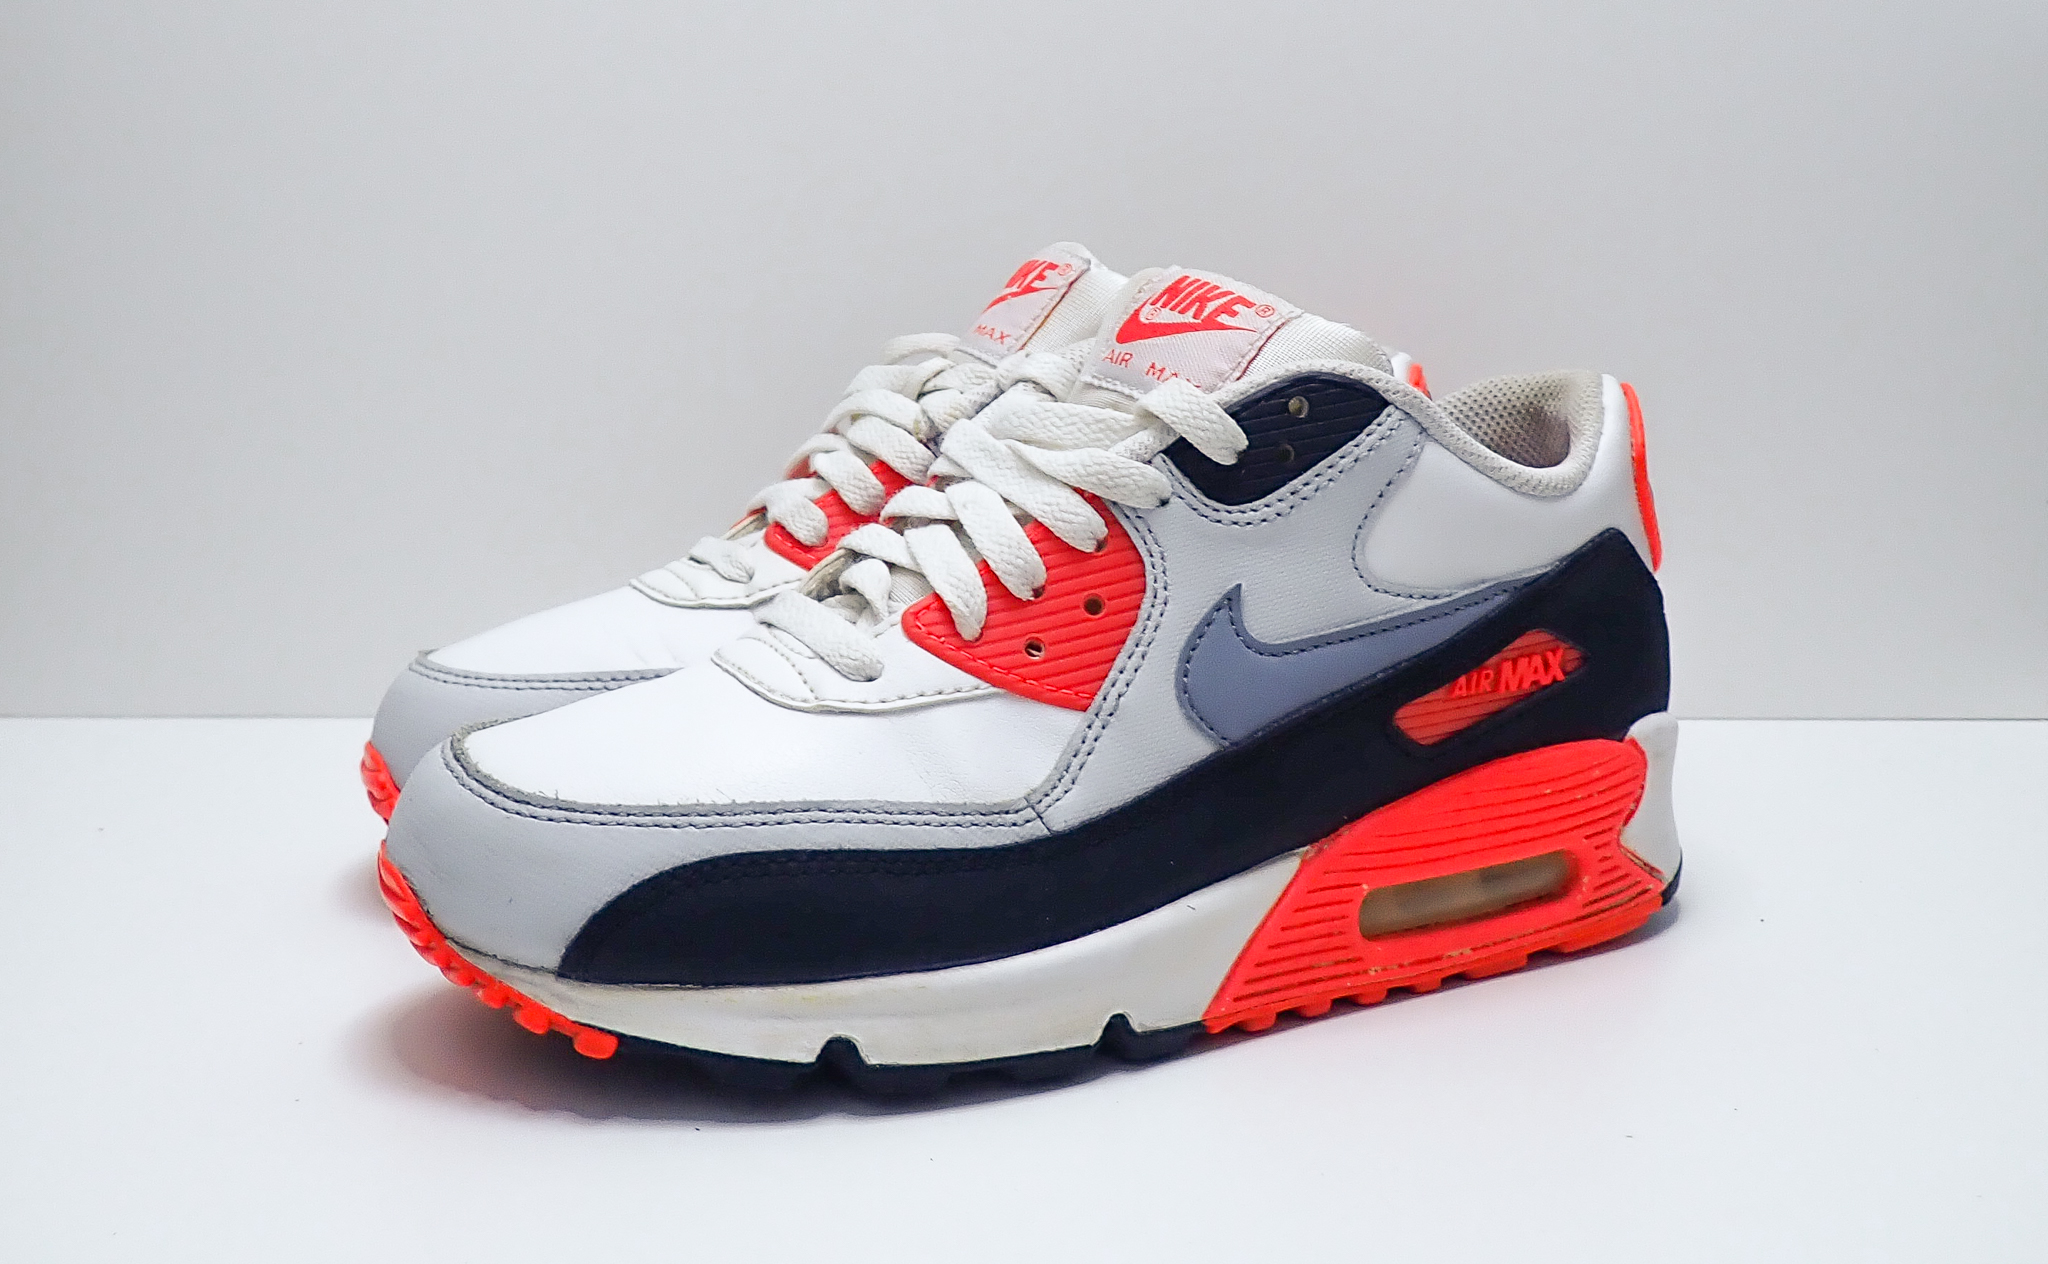 Air Max 90 GS Infrared